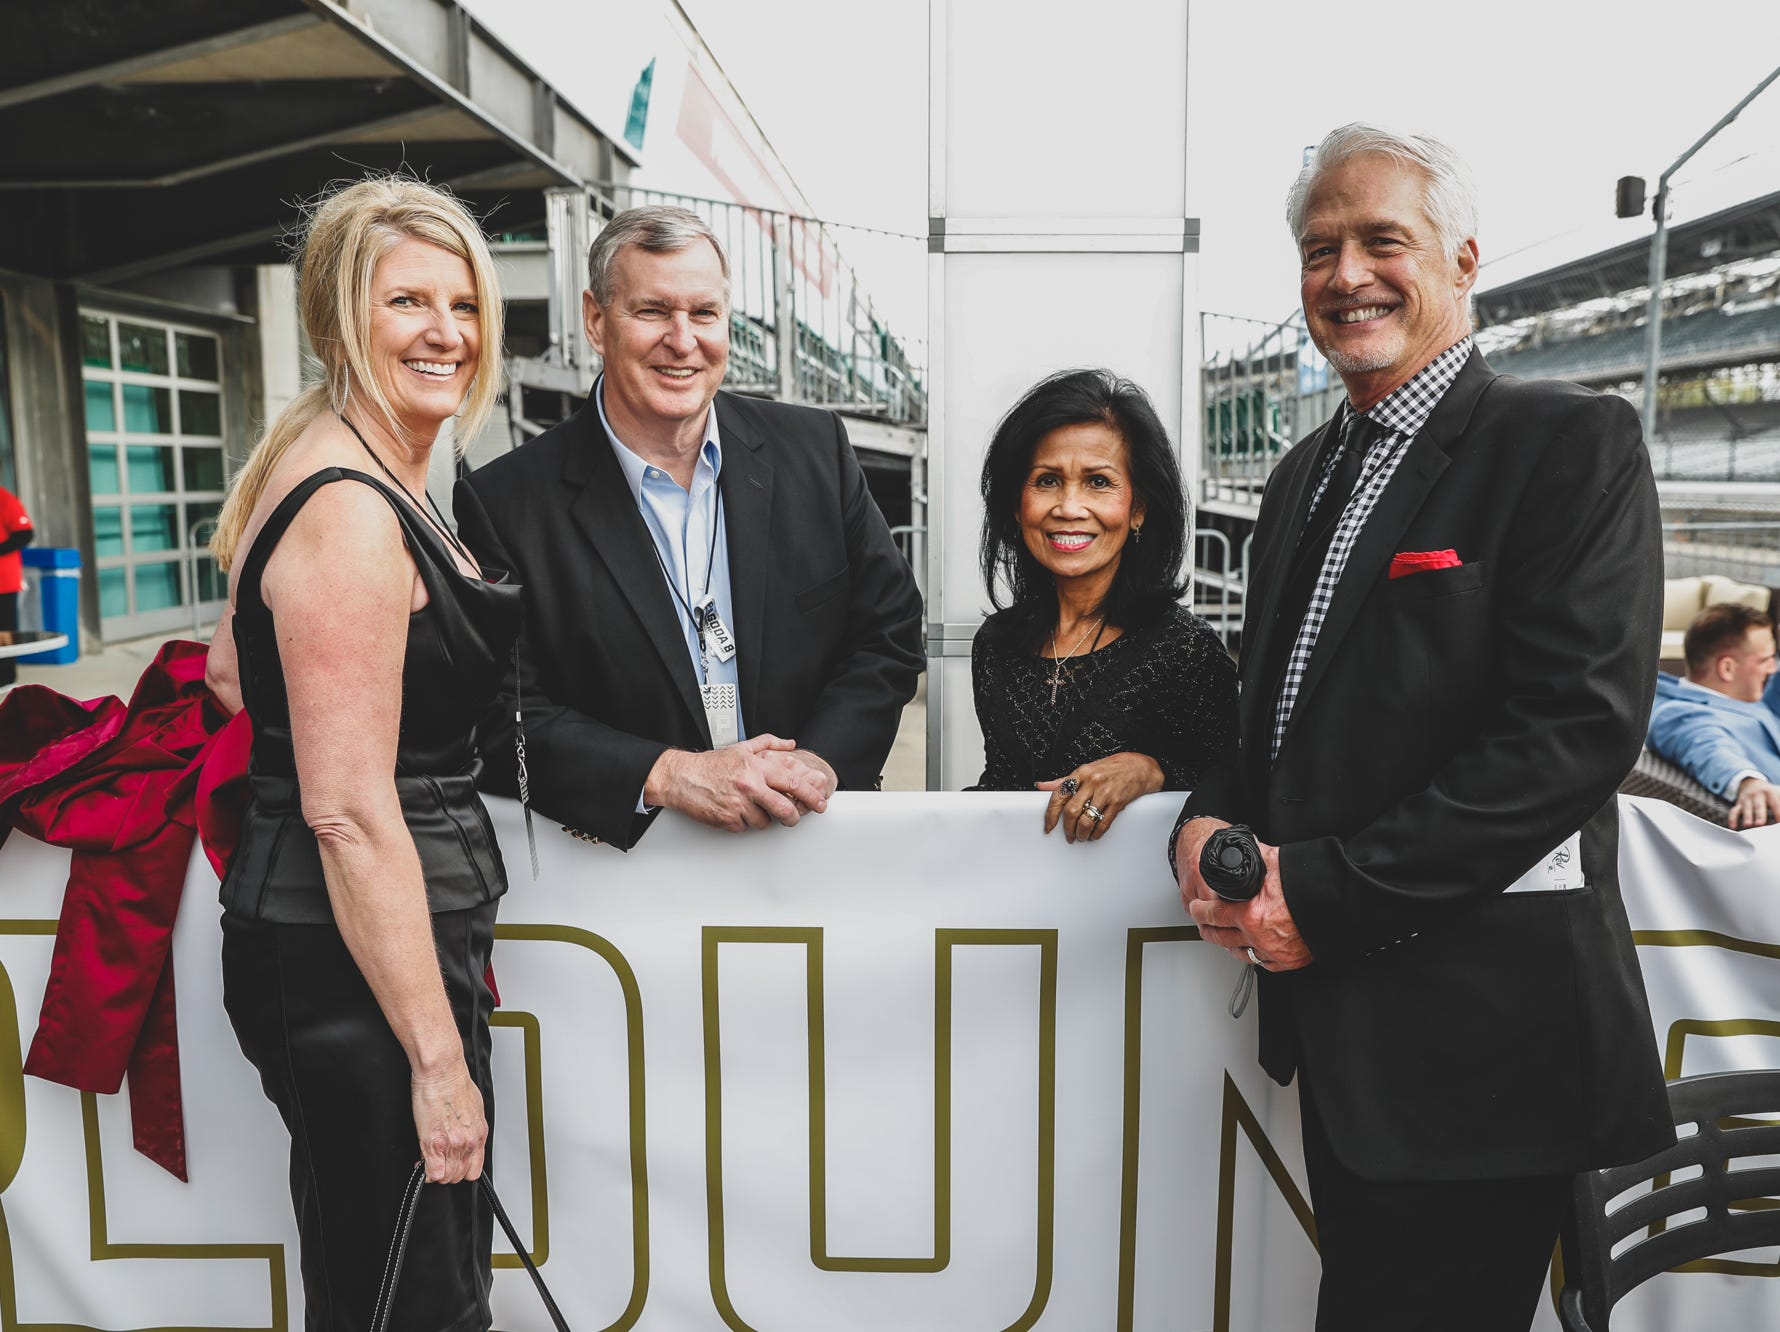 Jlynn Cooper, left, Former Indianapolis Mayor Greg Ballard, center left, his wife Winnie Ballard, center right,  and Jeff Cooper attend the Rev Indy fundraiser, held at the Indianapolis Motor Speedway on Saturday, May 4, 2019. Funds raised support the IU Health Foundation statewide and the IU Health Emergency Medical Center at IMS.